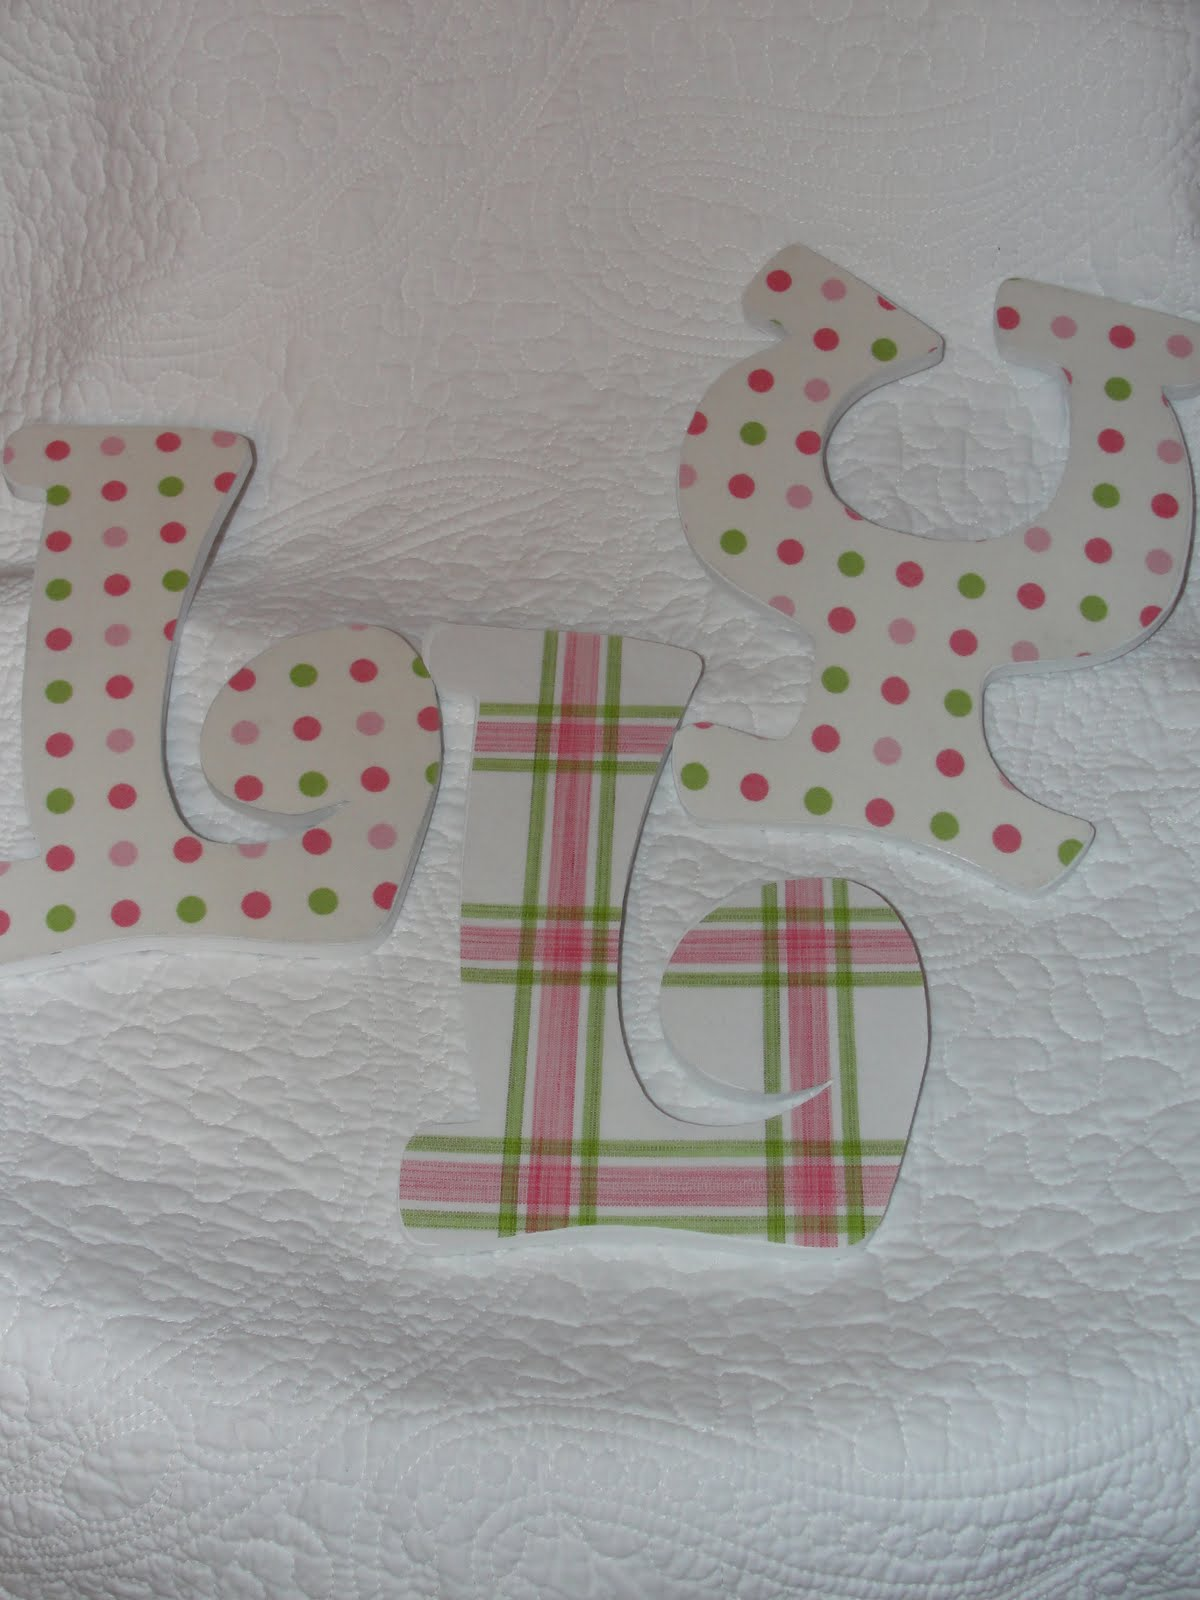 imperfectly beautiful fabric covered letters and a